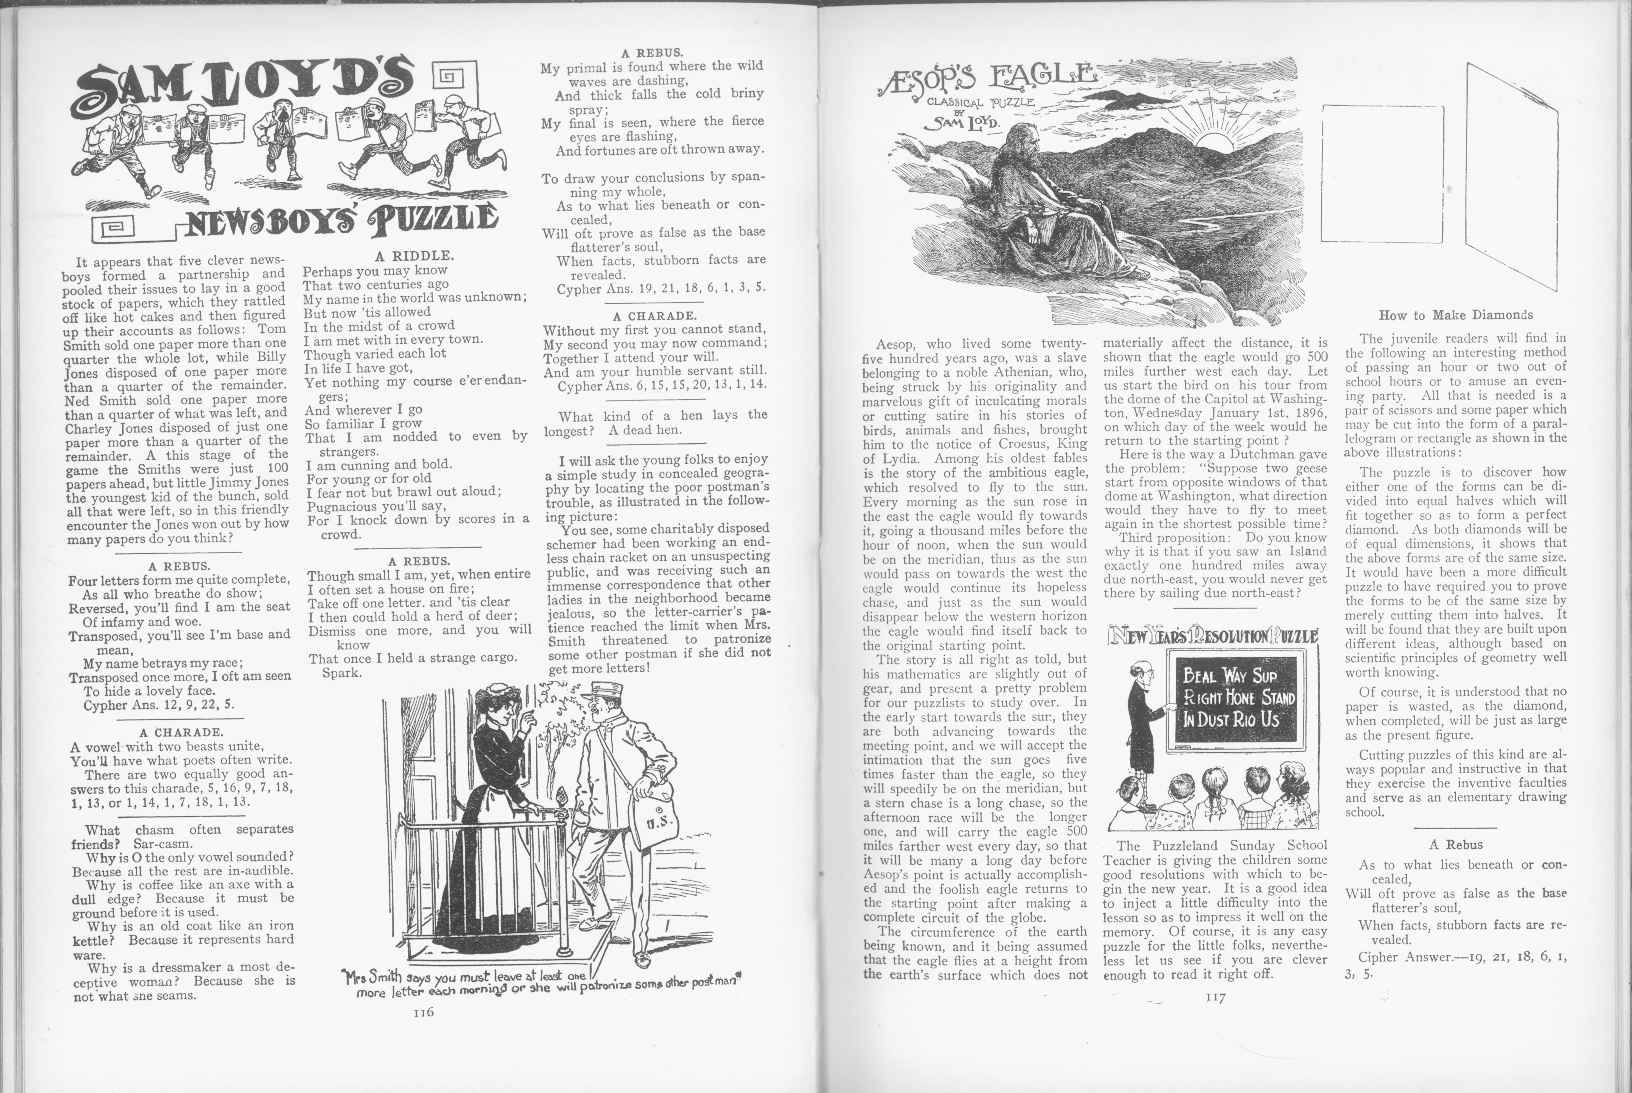 Sam Loyd - Cyclopedia of Puzzles - page 116-117